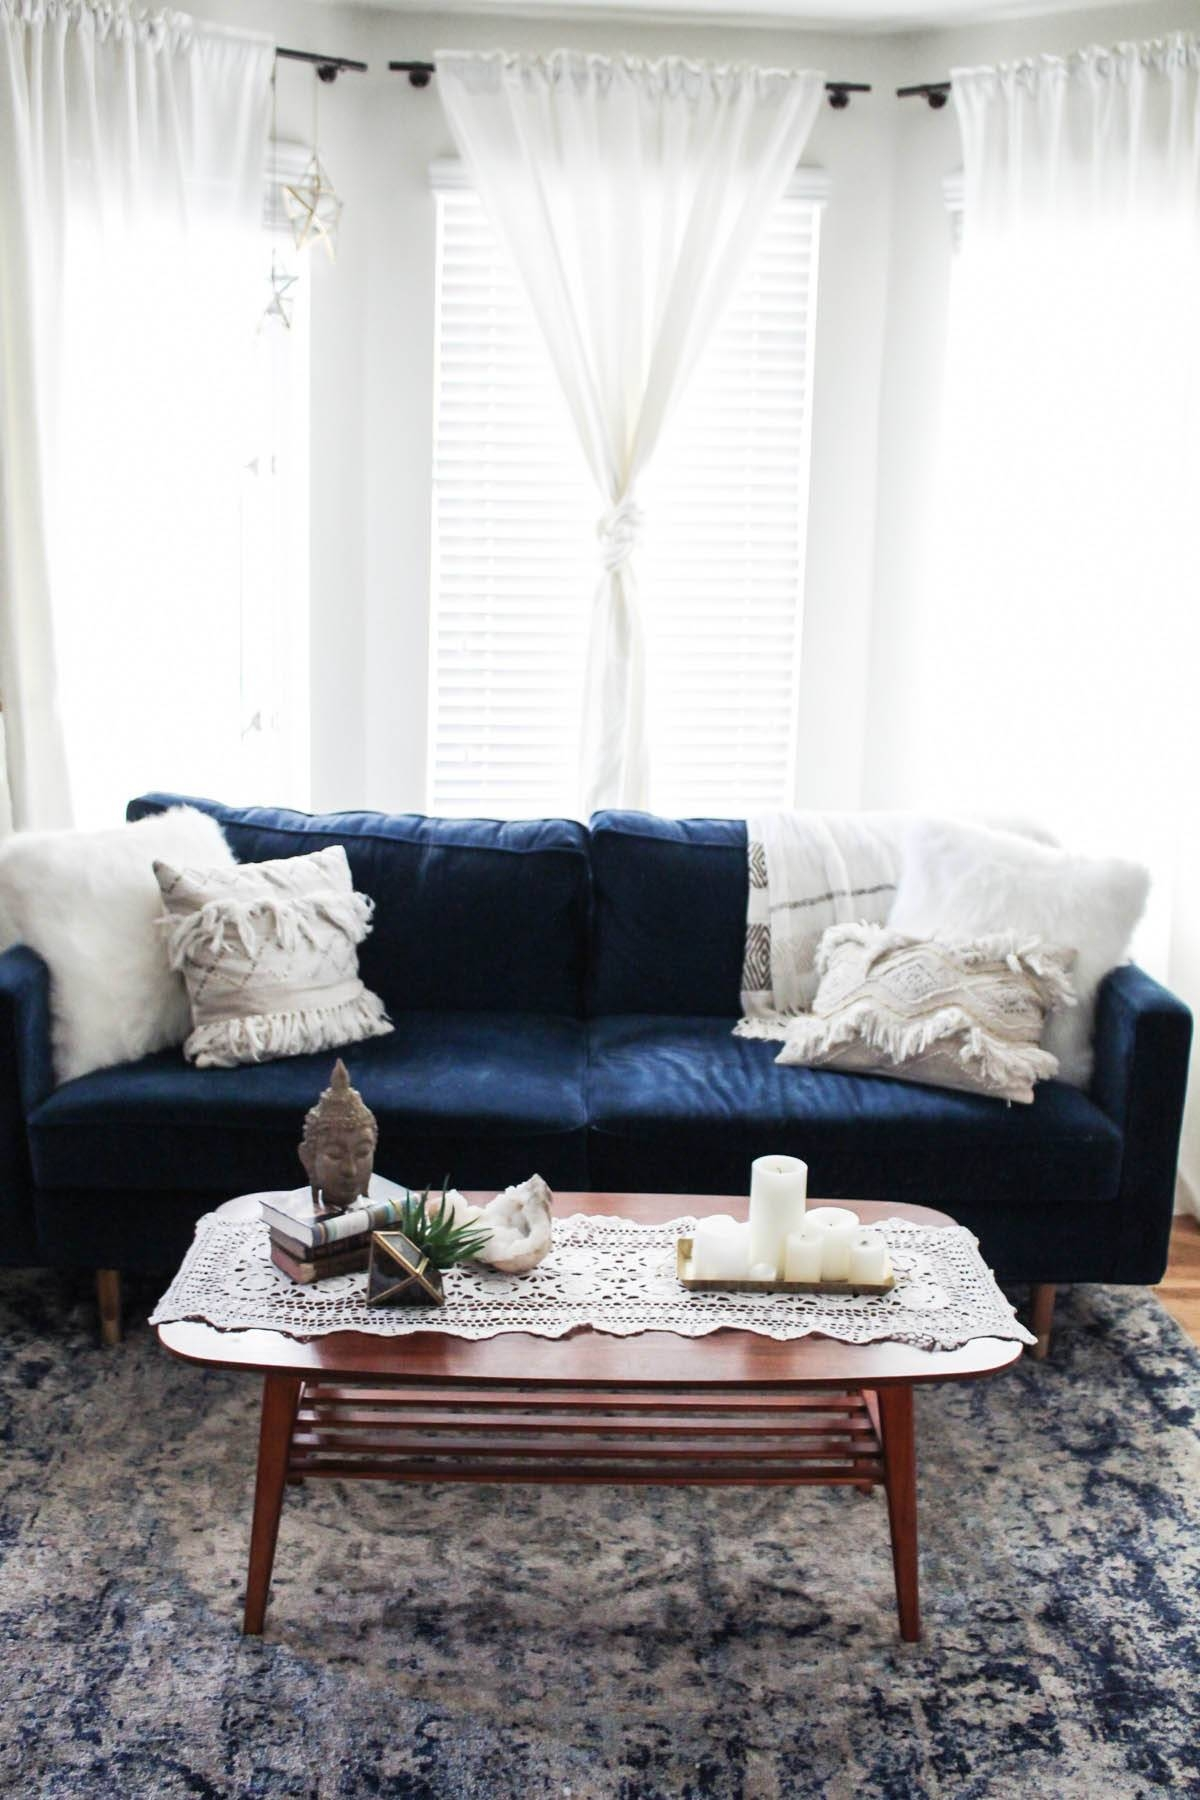 3 Ways To Style A Coffee Table | Advice From A Twenty Something inside Boho Coffee Tables (Image 3 of 30)